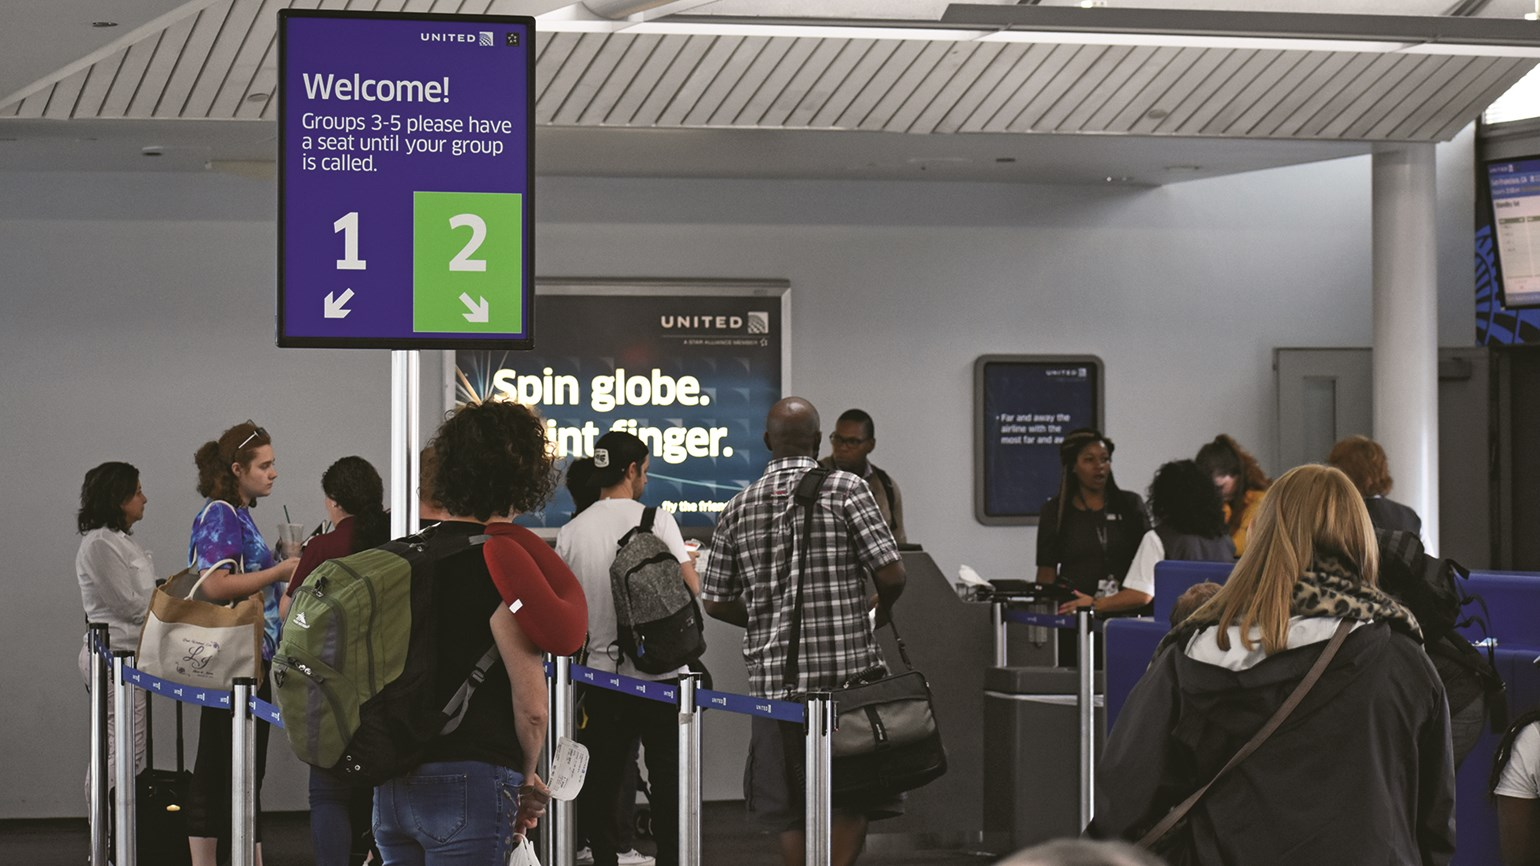 United implements new boarding procedure